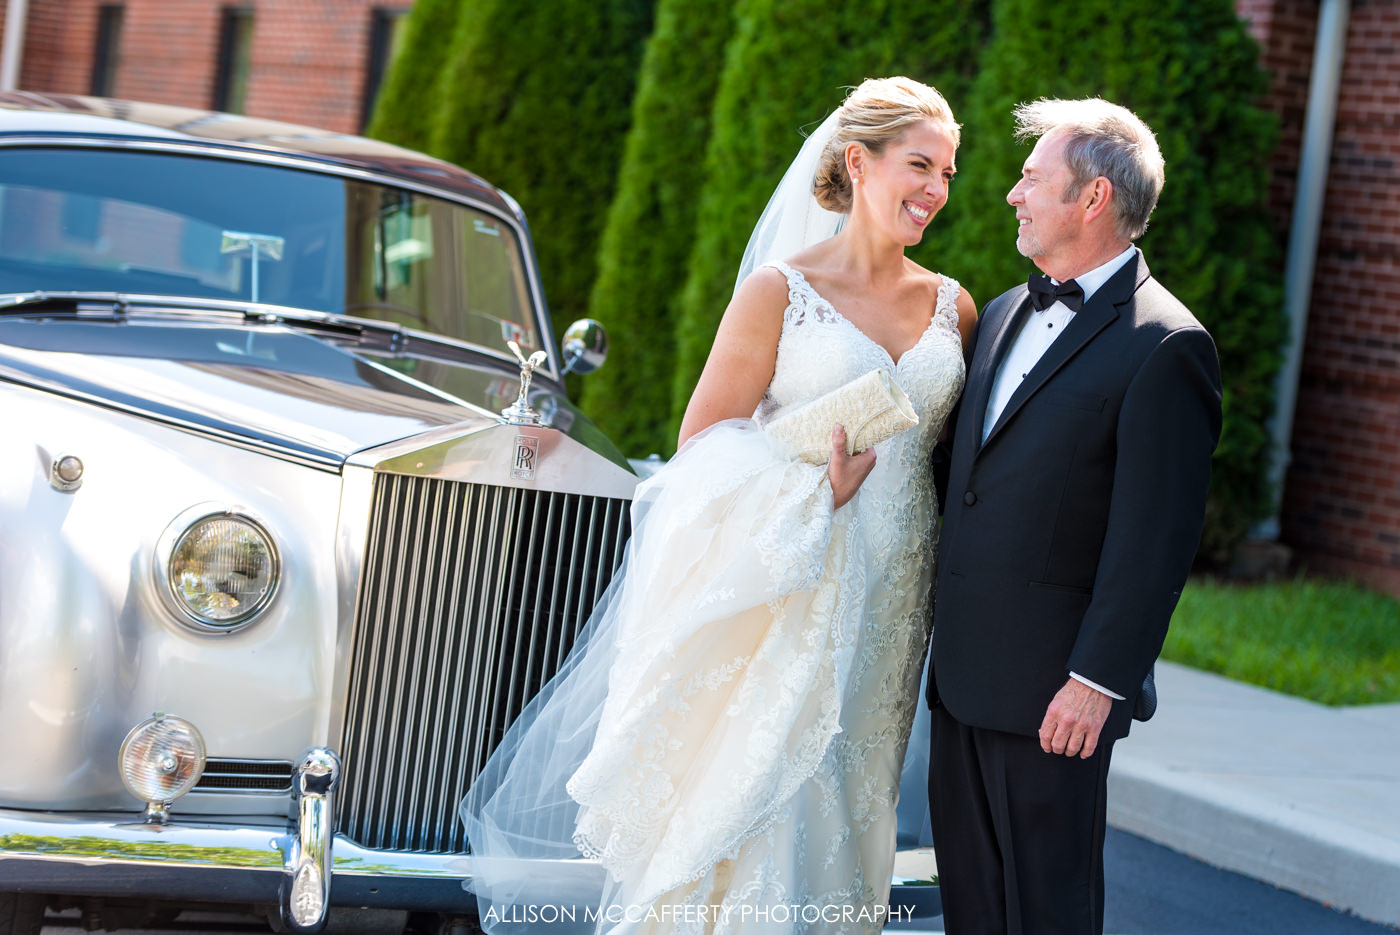 Bride and Father standing in front of a Rolls Royce on wedding day